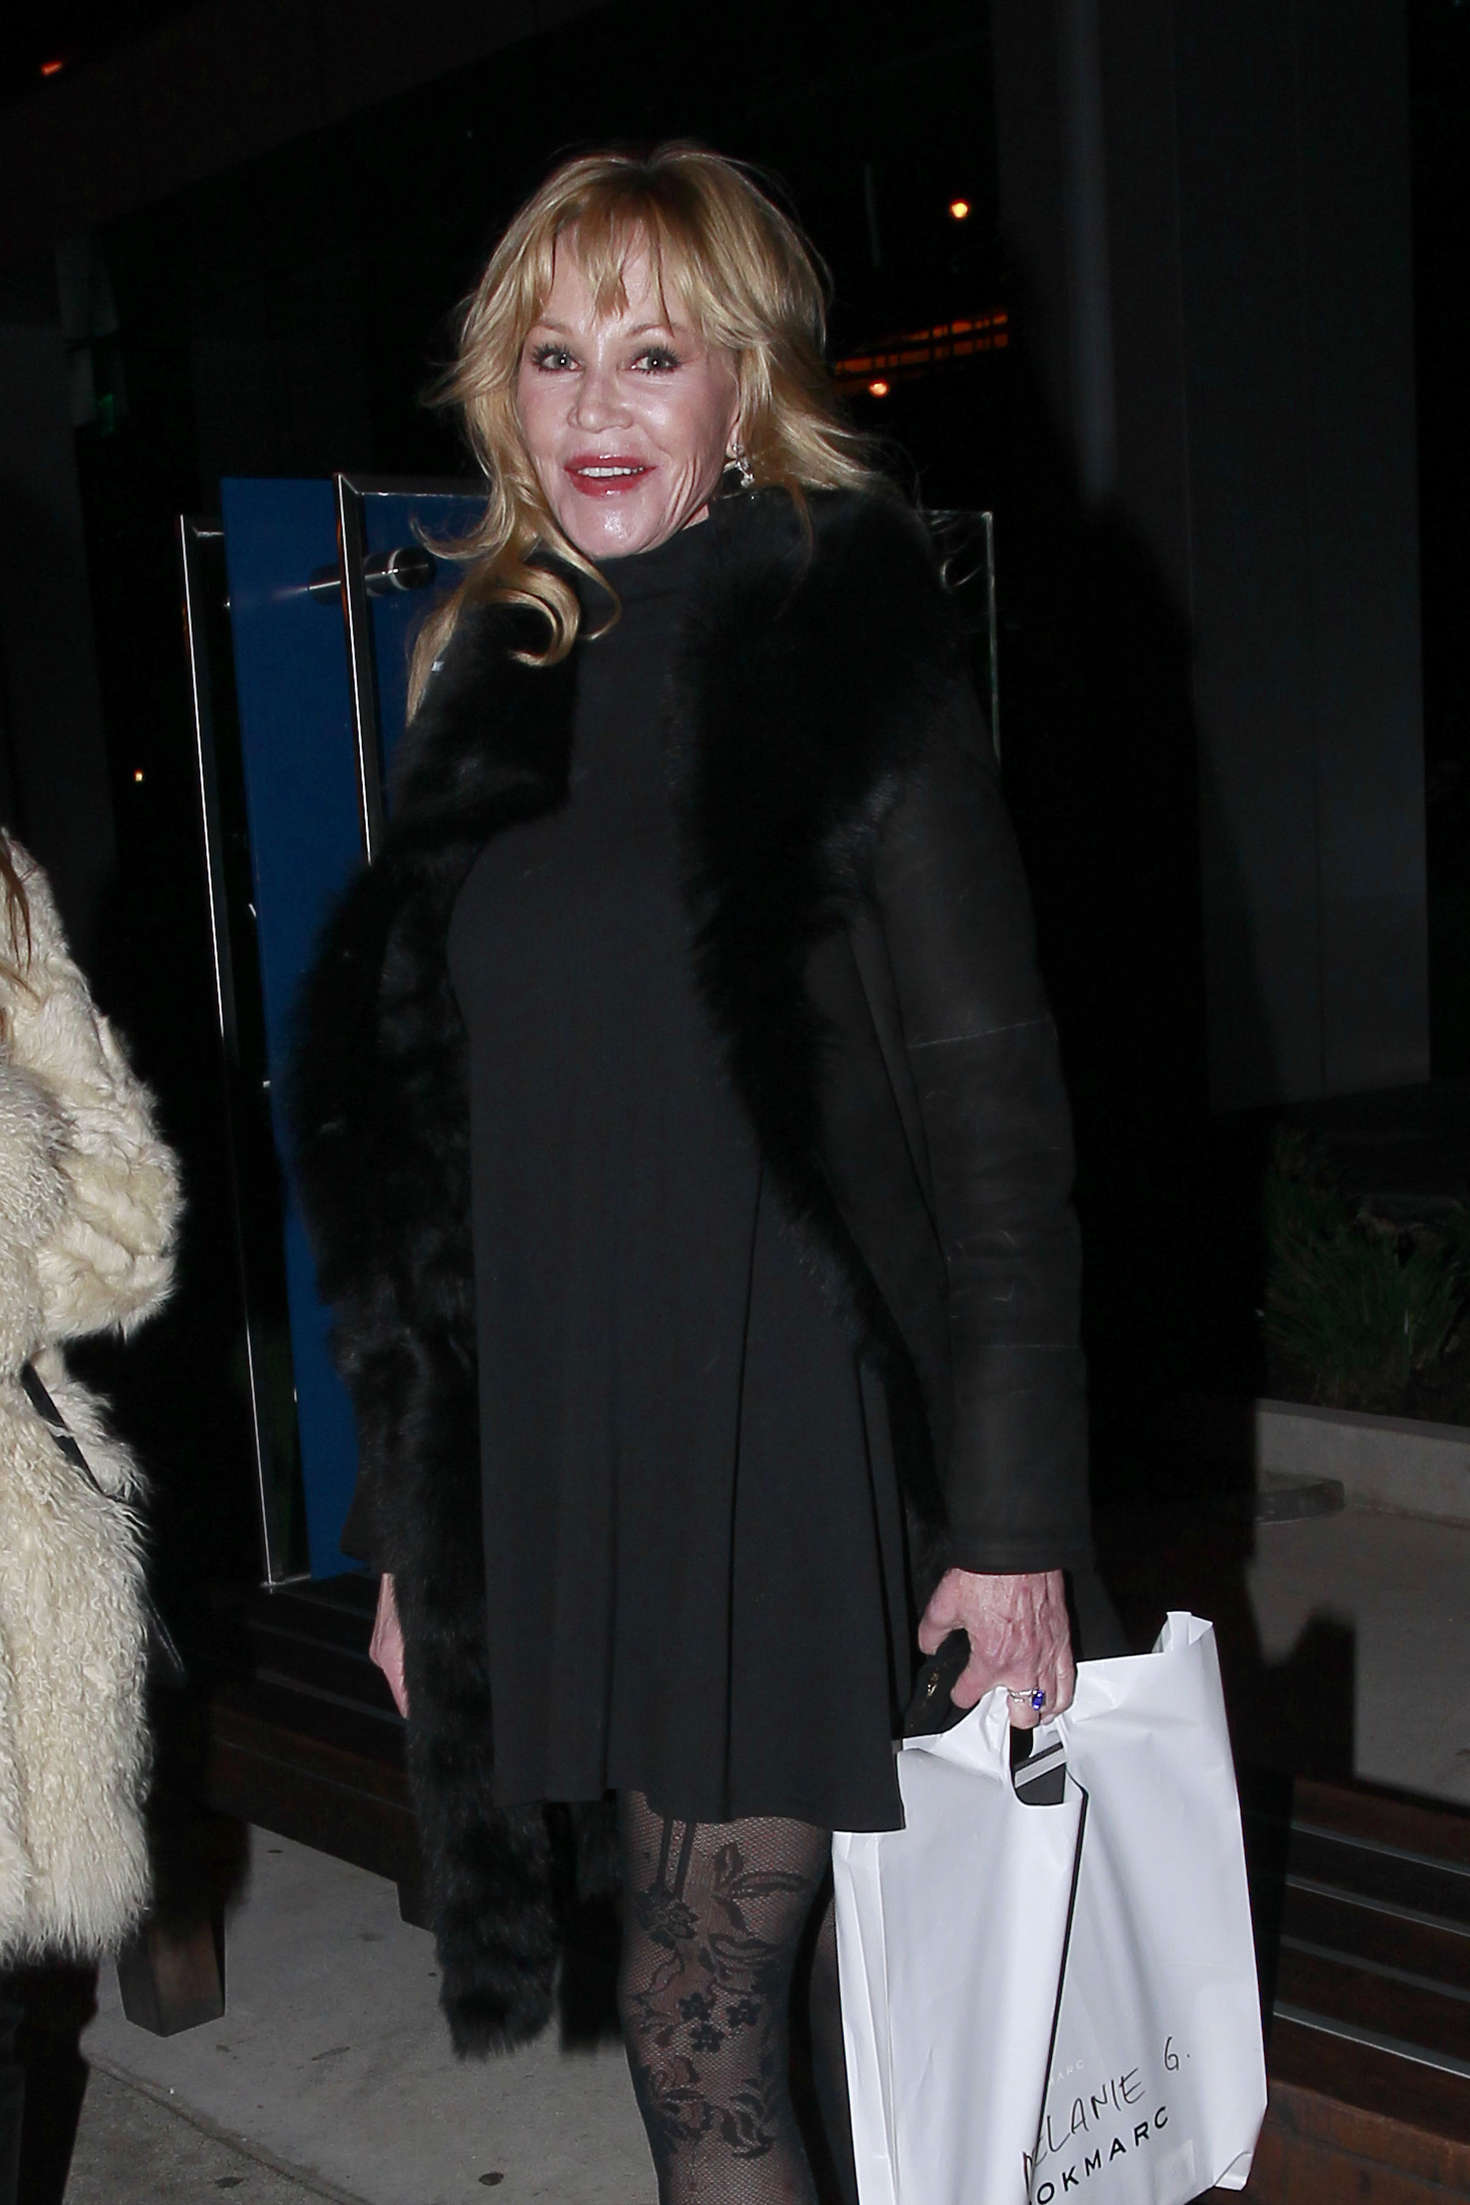 Melanie Griffith at BOA Steakhouse in Los Angeles